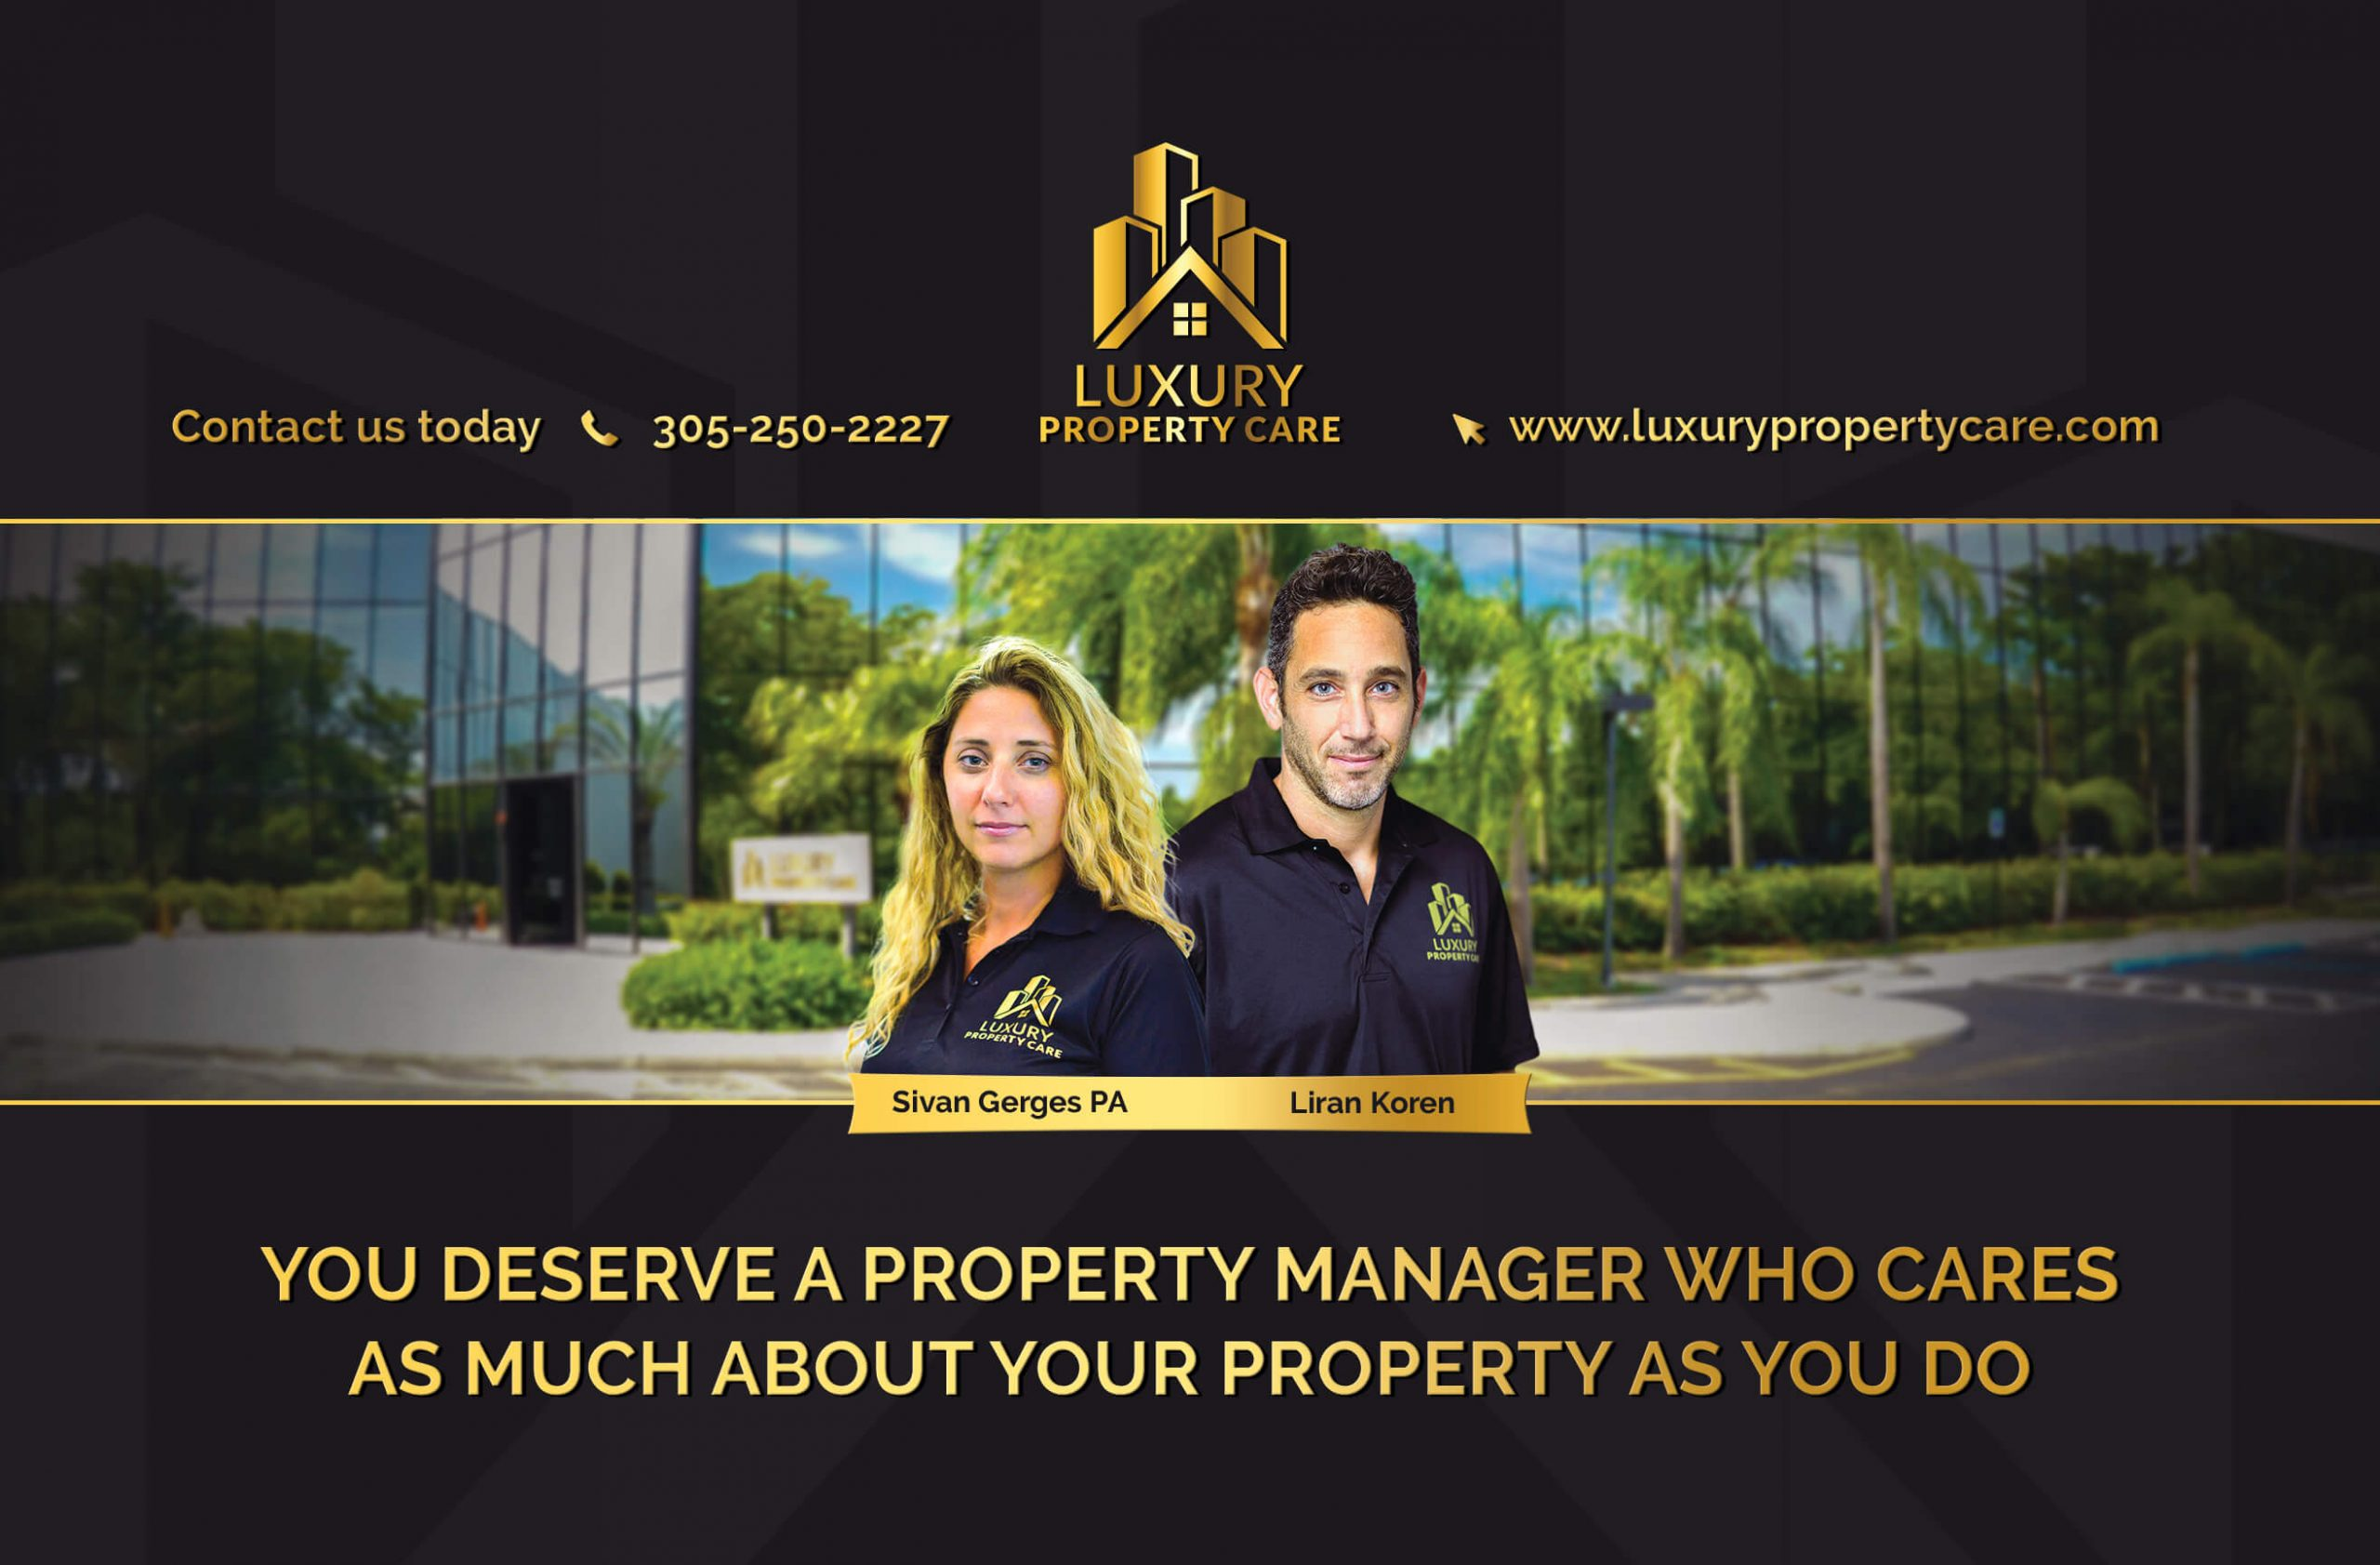 Luxury property care: Your Trusted vacation property manager